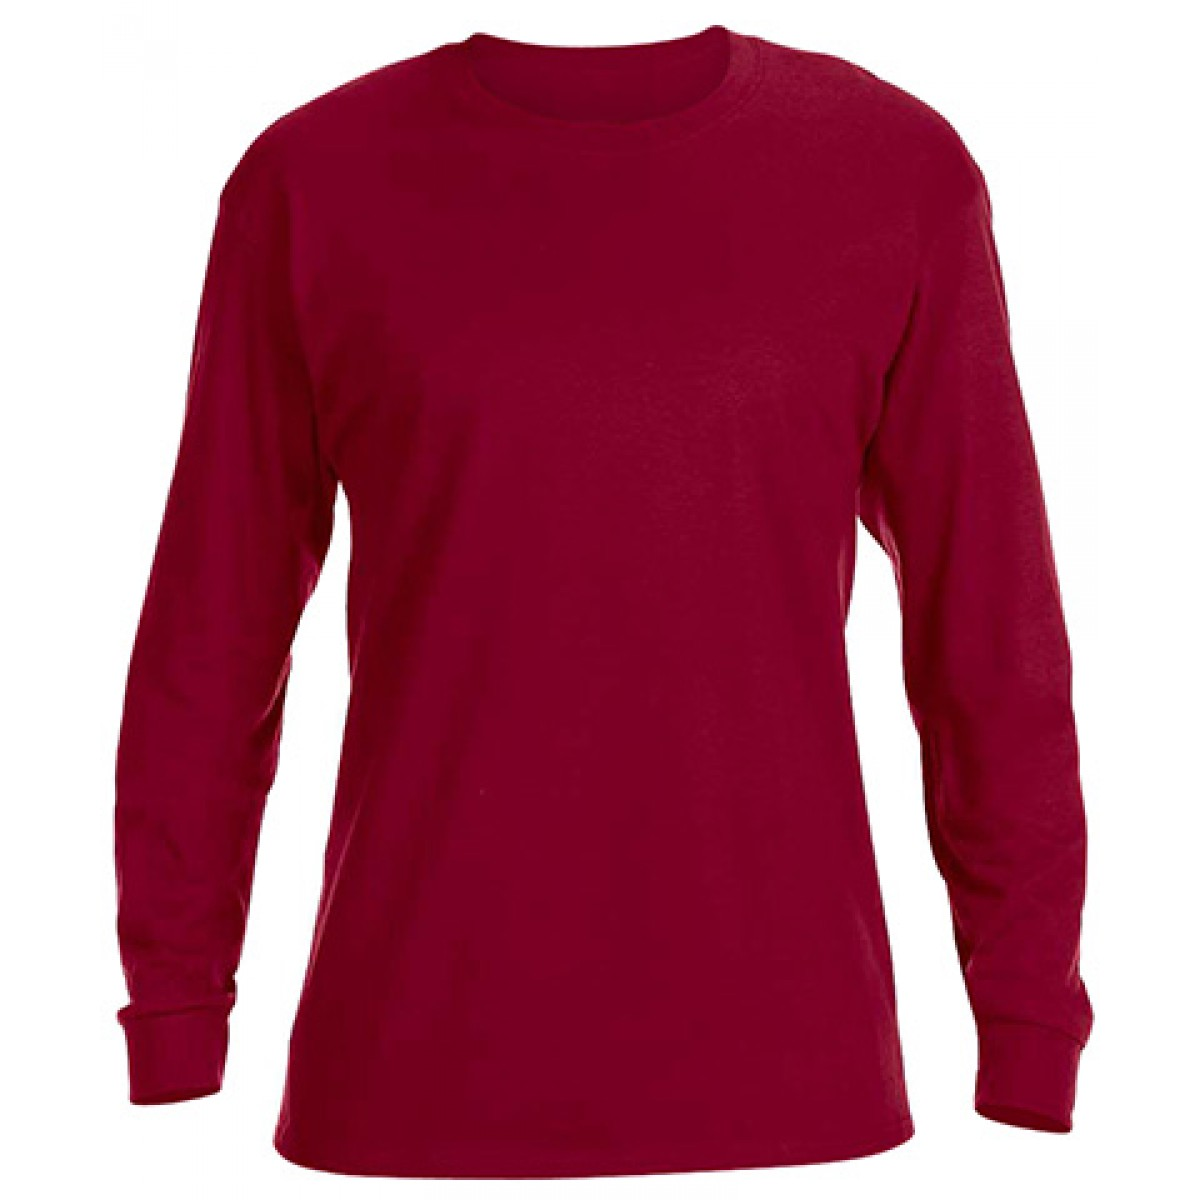 Heavy Cotton Long-Sleeve Adidas Shirt-Red-YM